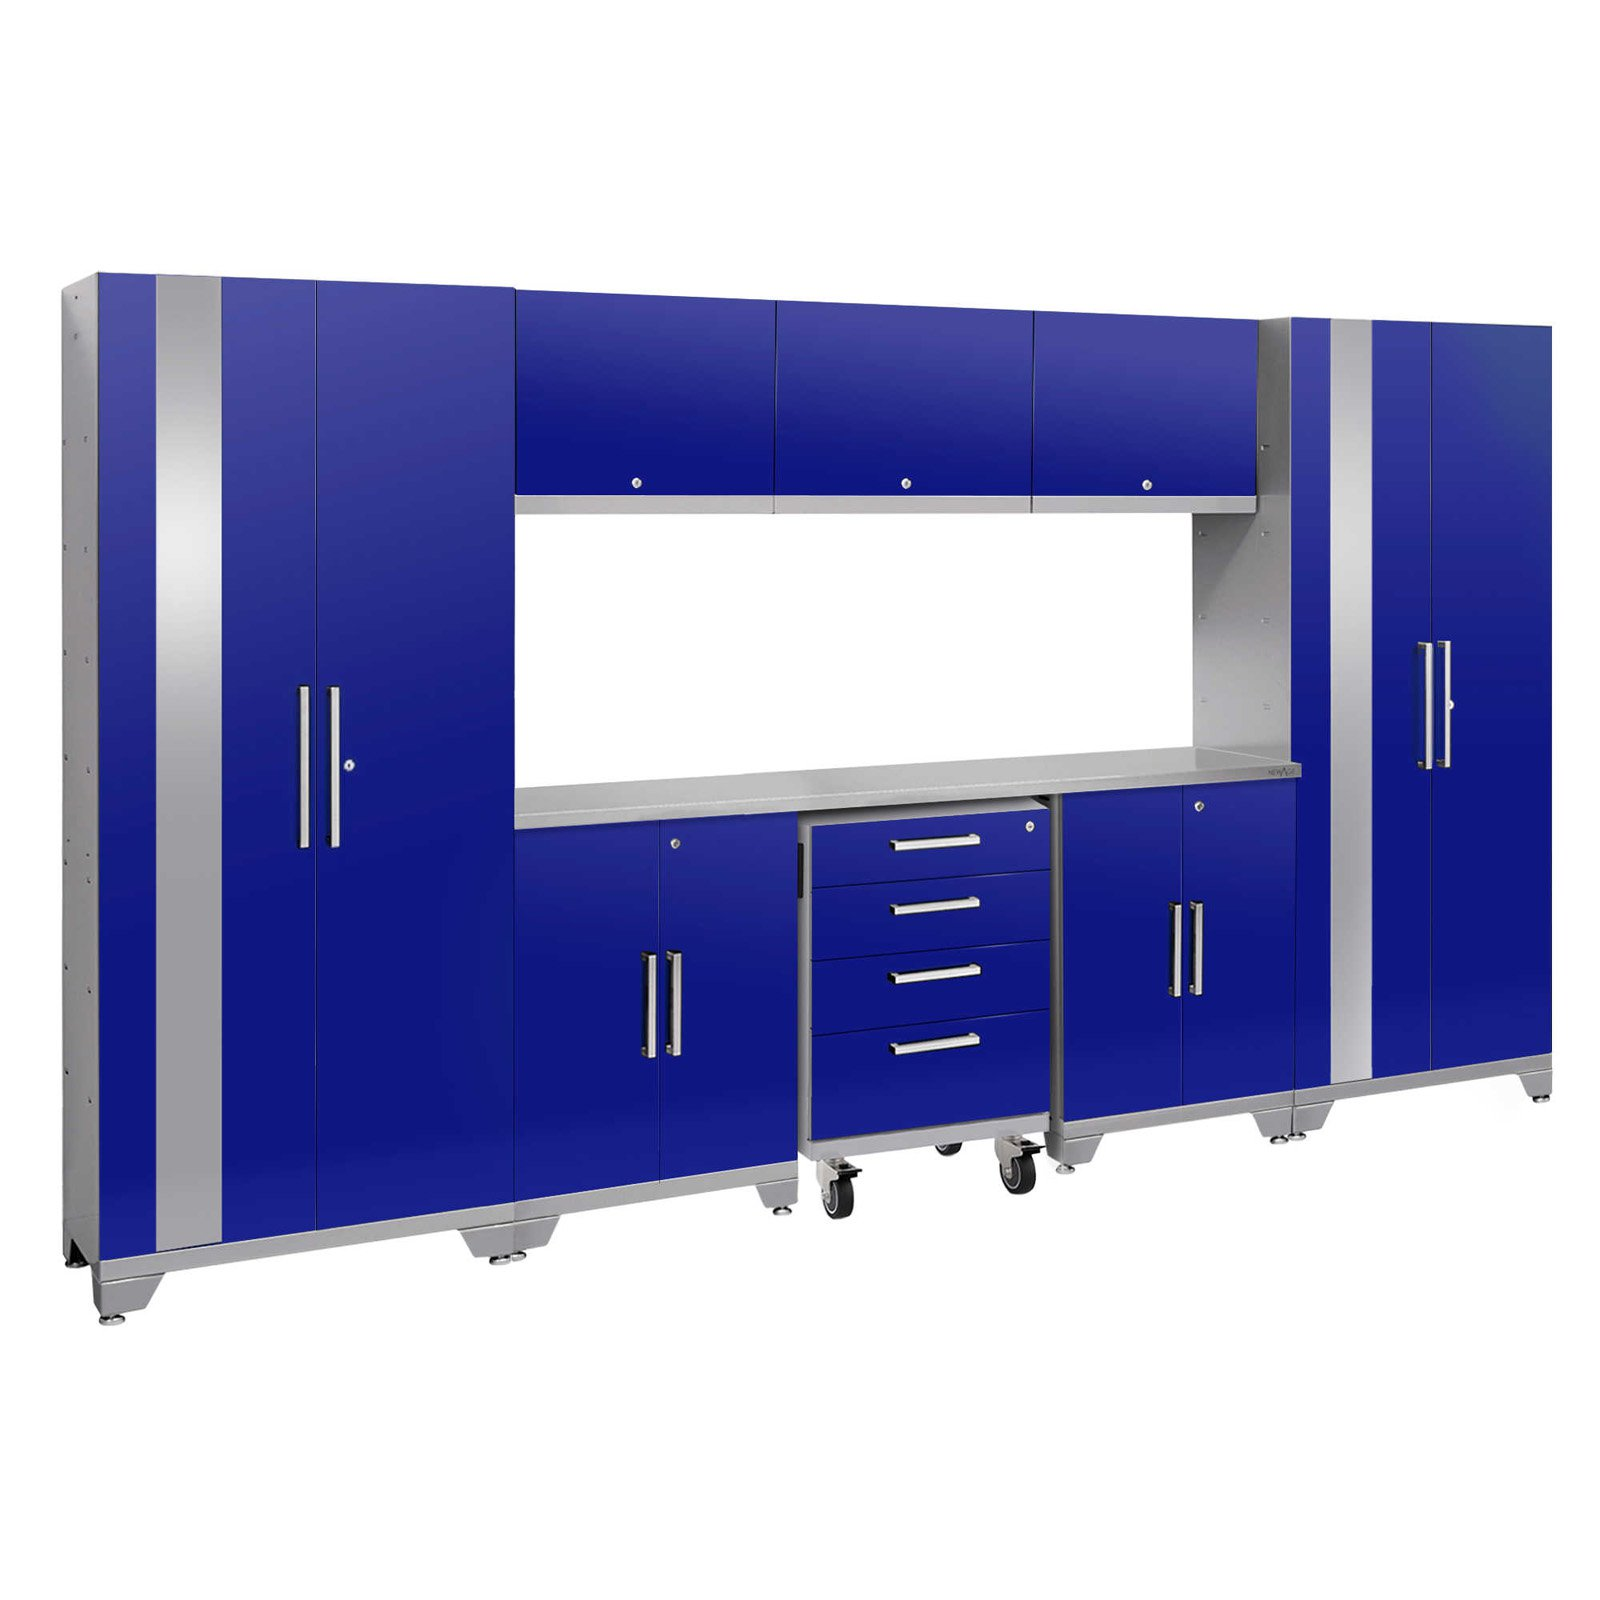 NewAge Products Performance 2.0 9 Piece Garage Cabinet System II